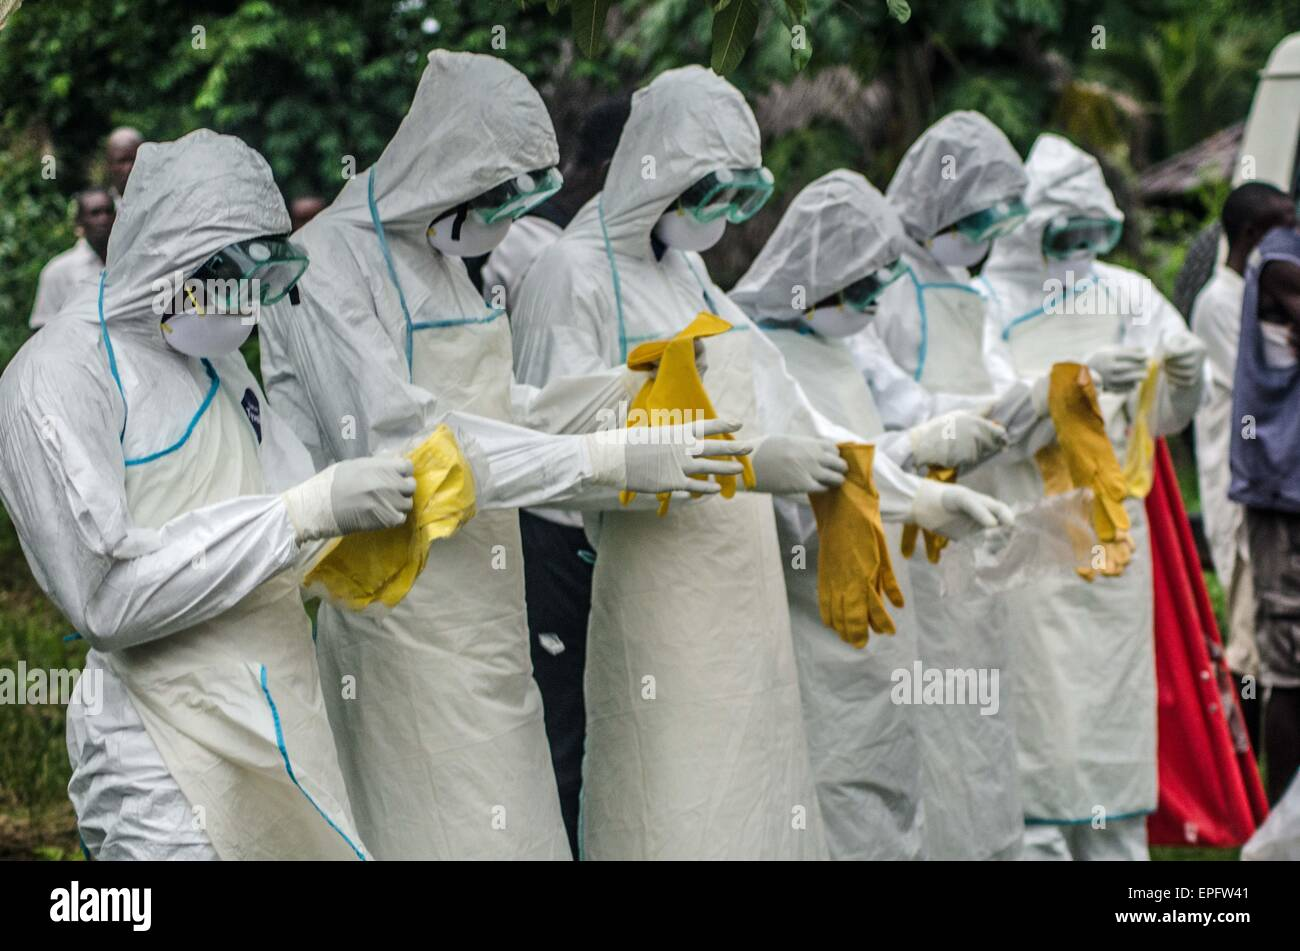 A burial team puts on PPE before collecting a suspected Ebola victim. - Stock Image